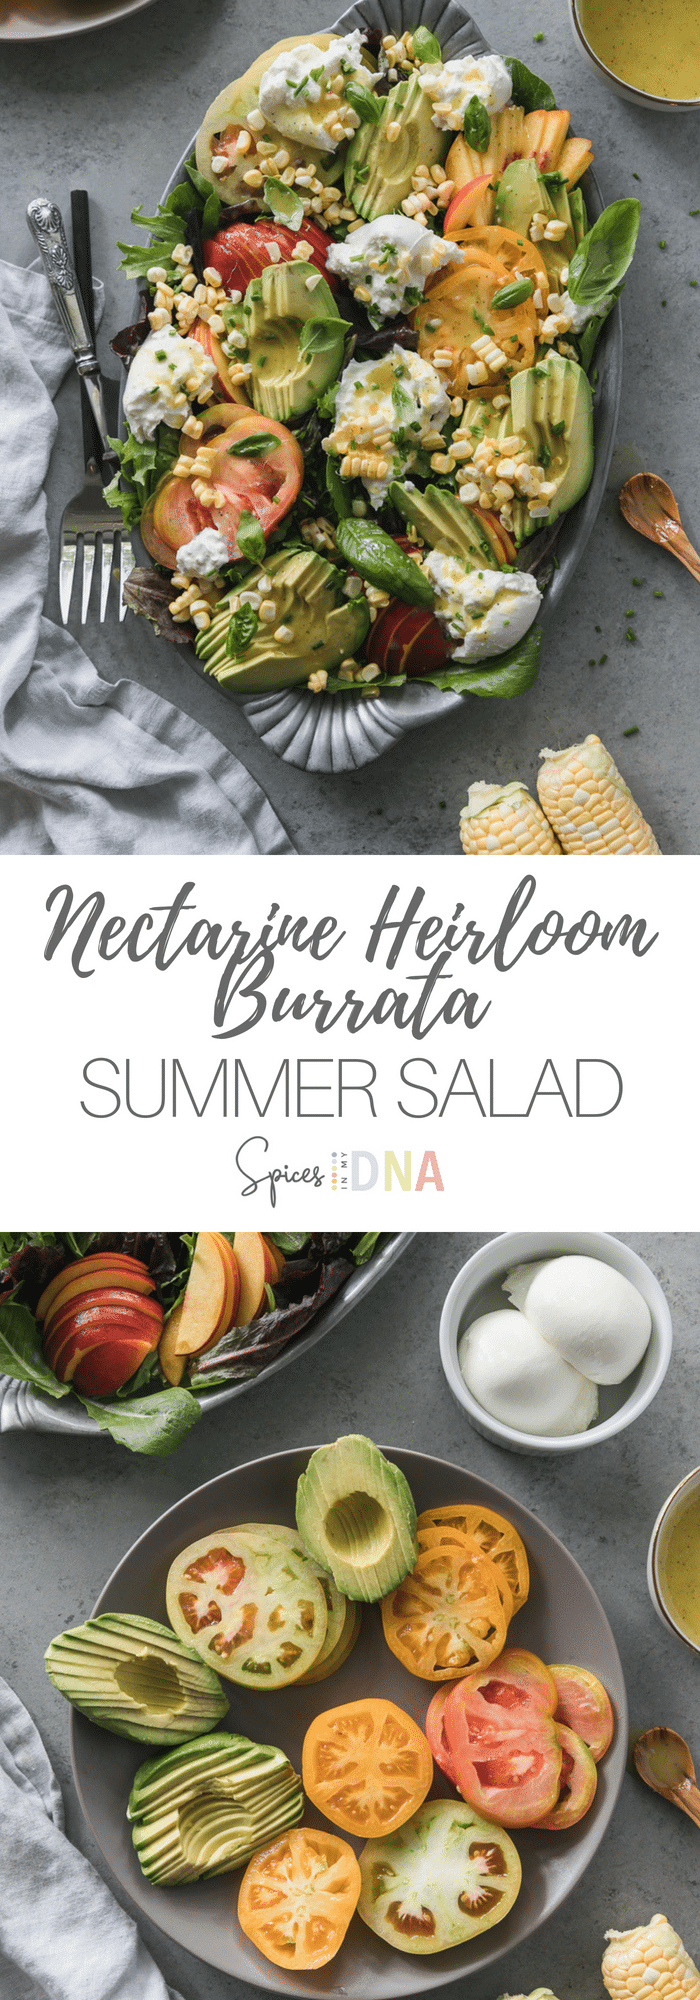 This Nectarine Heirloom Tomato Summer Salad with Burrata is the perfect combination of the best ingredients summer has to offer. Juicy heirloom tomatoes, fresh nectarines, creamy burrata cheese, avocado, raw corn, basil, chives, and a simple honey champagne vinaigrette! #summersalad #burrata #easymeal